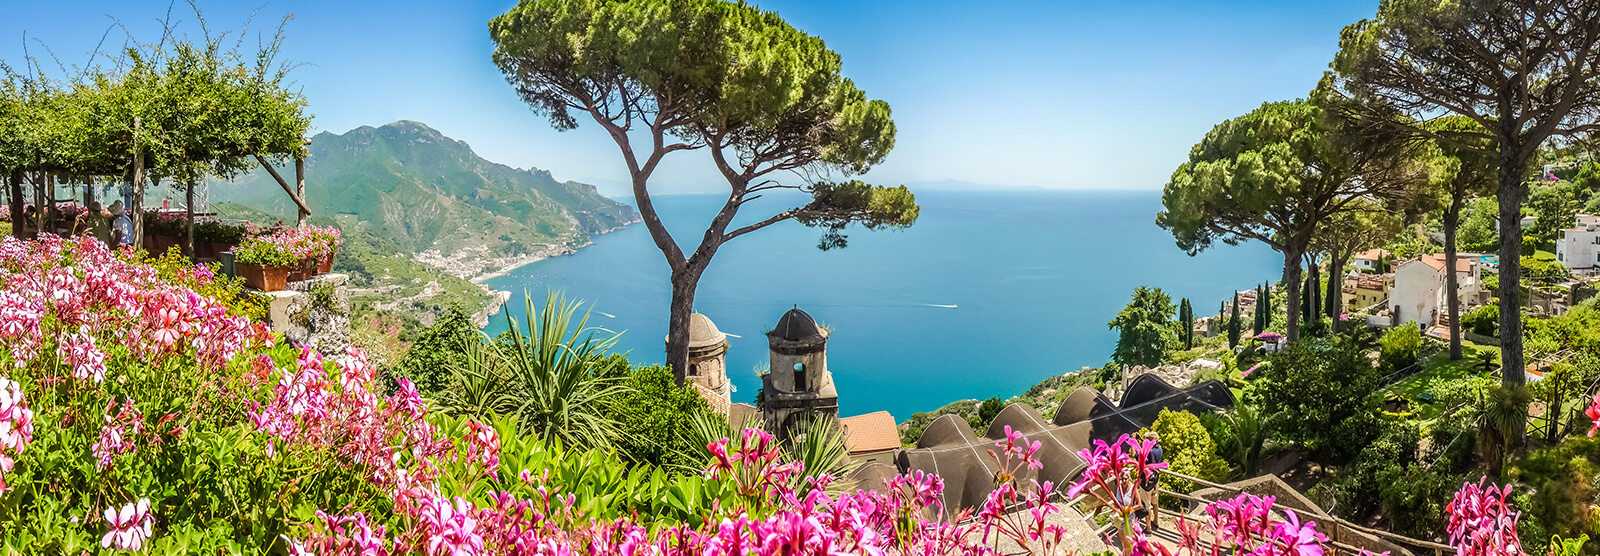 Italie-Zeilen-Sail-Events-Amalfi